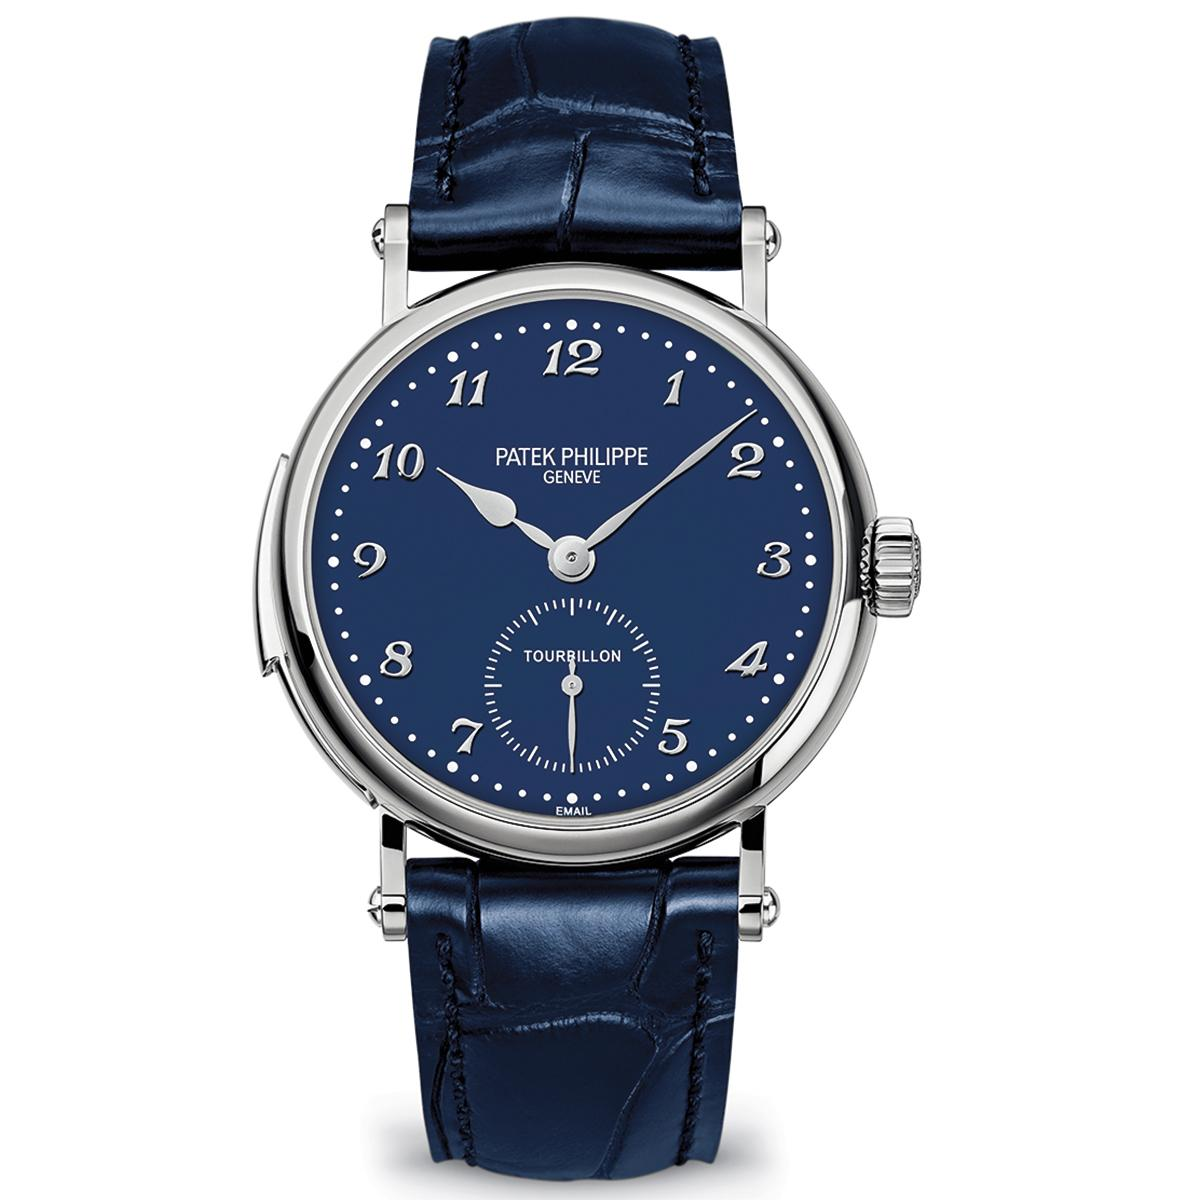 Patek Philippe Ref. 5539G Minute Repeater Tourbillon